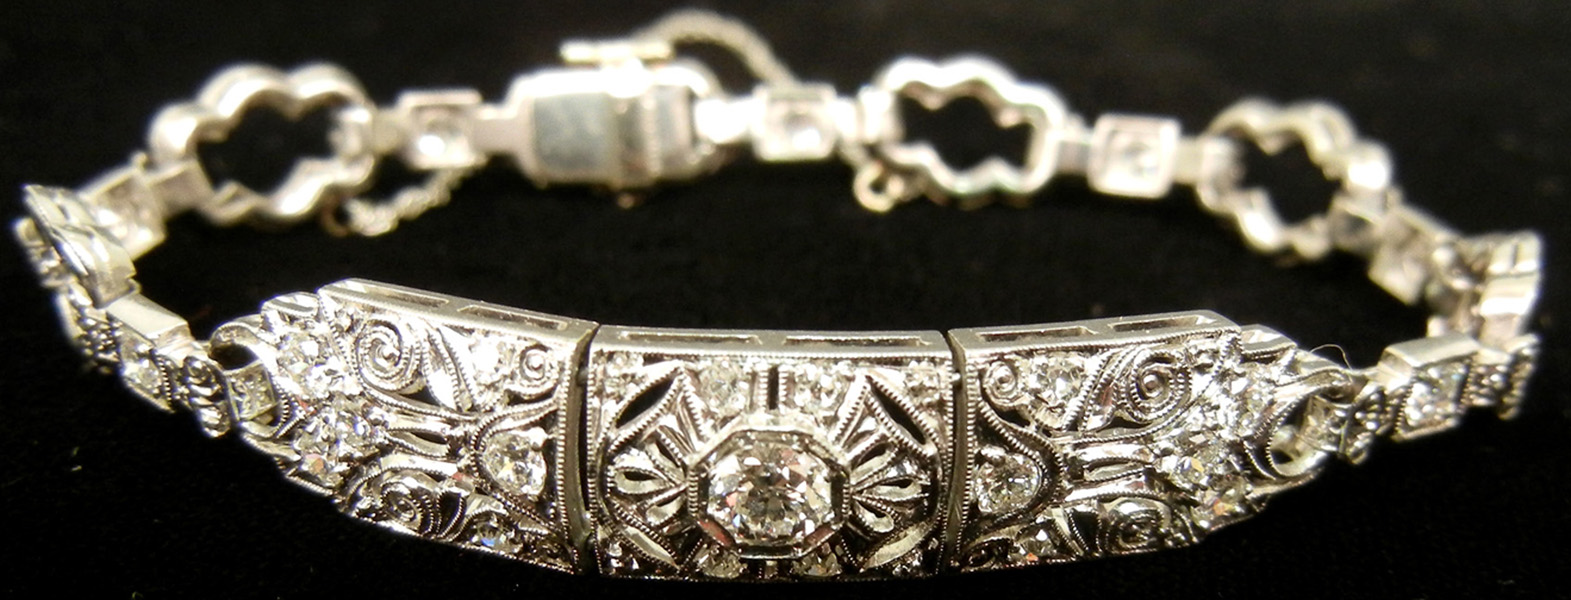 Platinum and diamond bracelet. Stephenson's image.